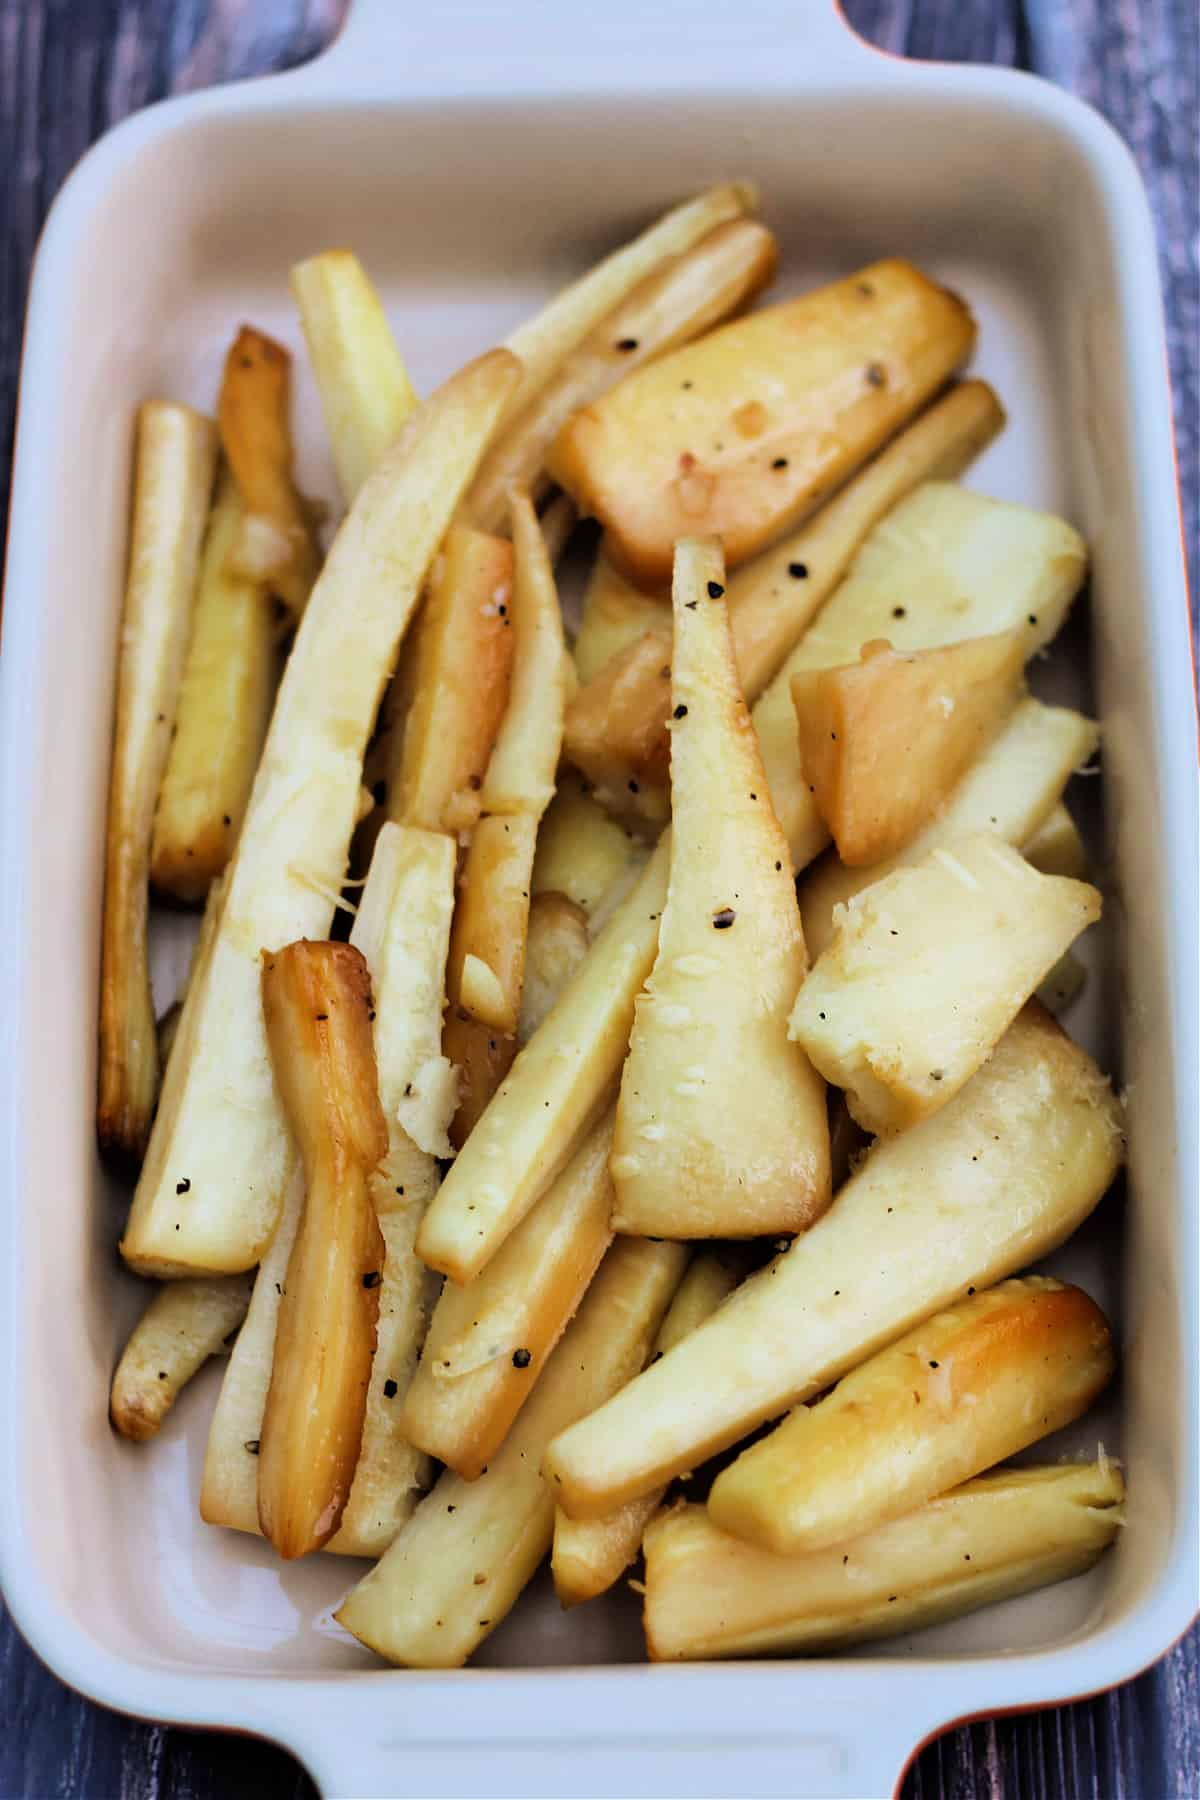 Roast parsnips in dish.